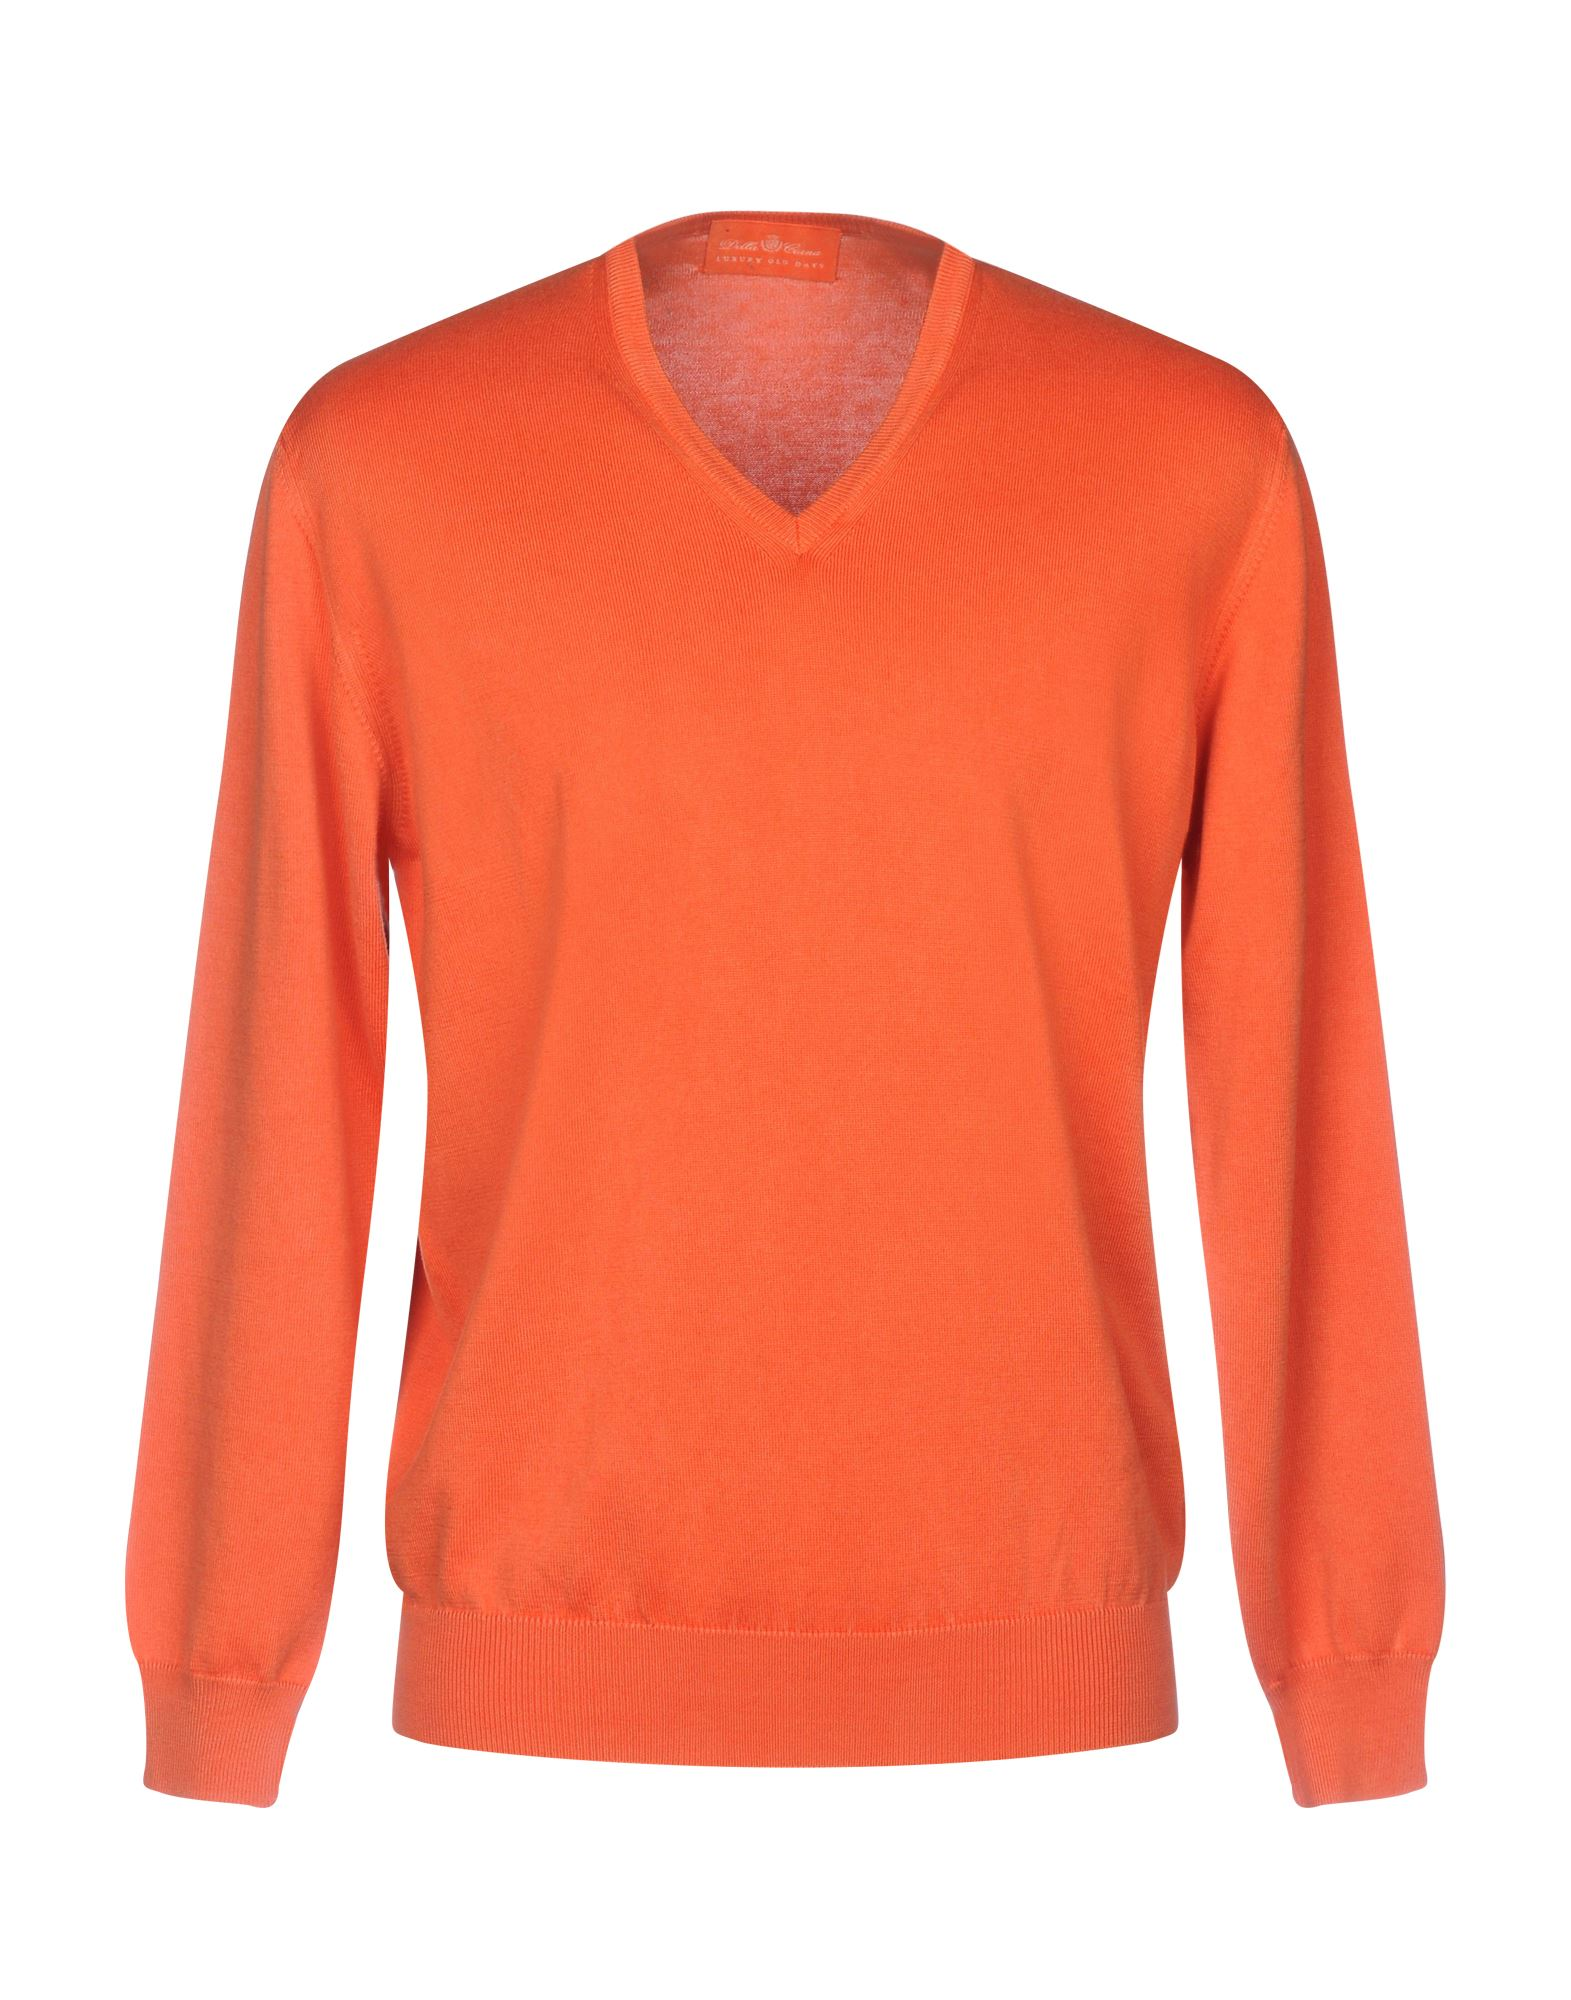 DELLA CIANA Sweater in Orange